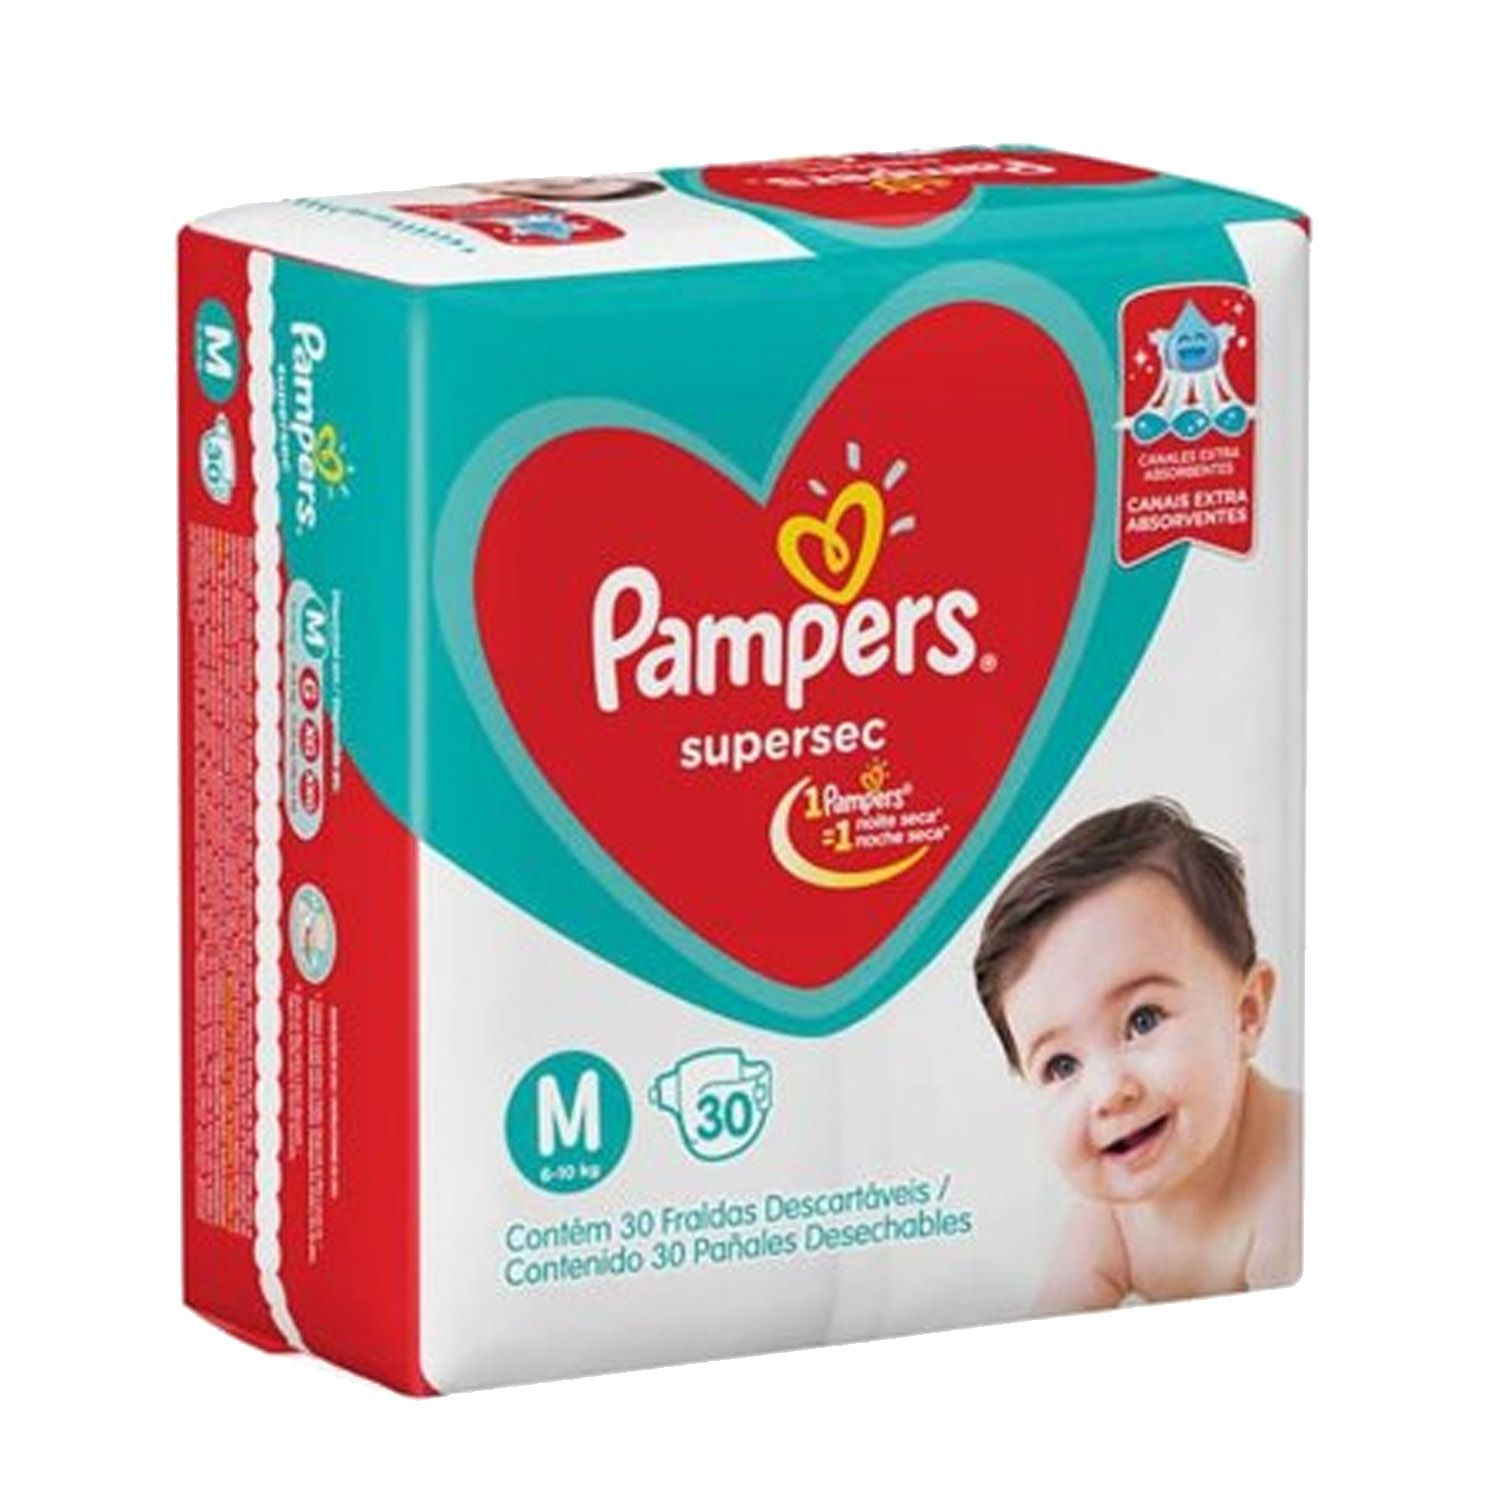 Fralda Pampers Supersec M Com 30 Unidades